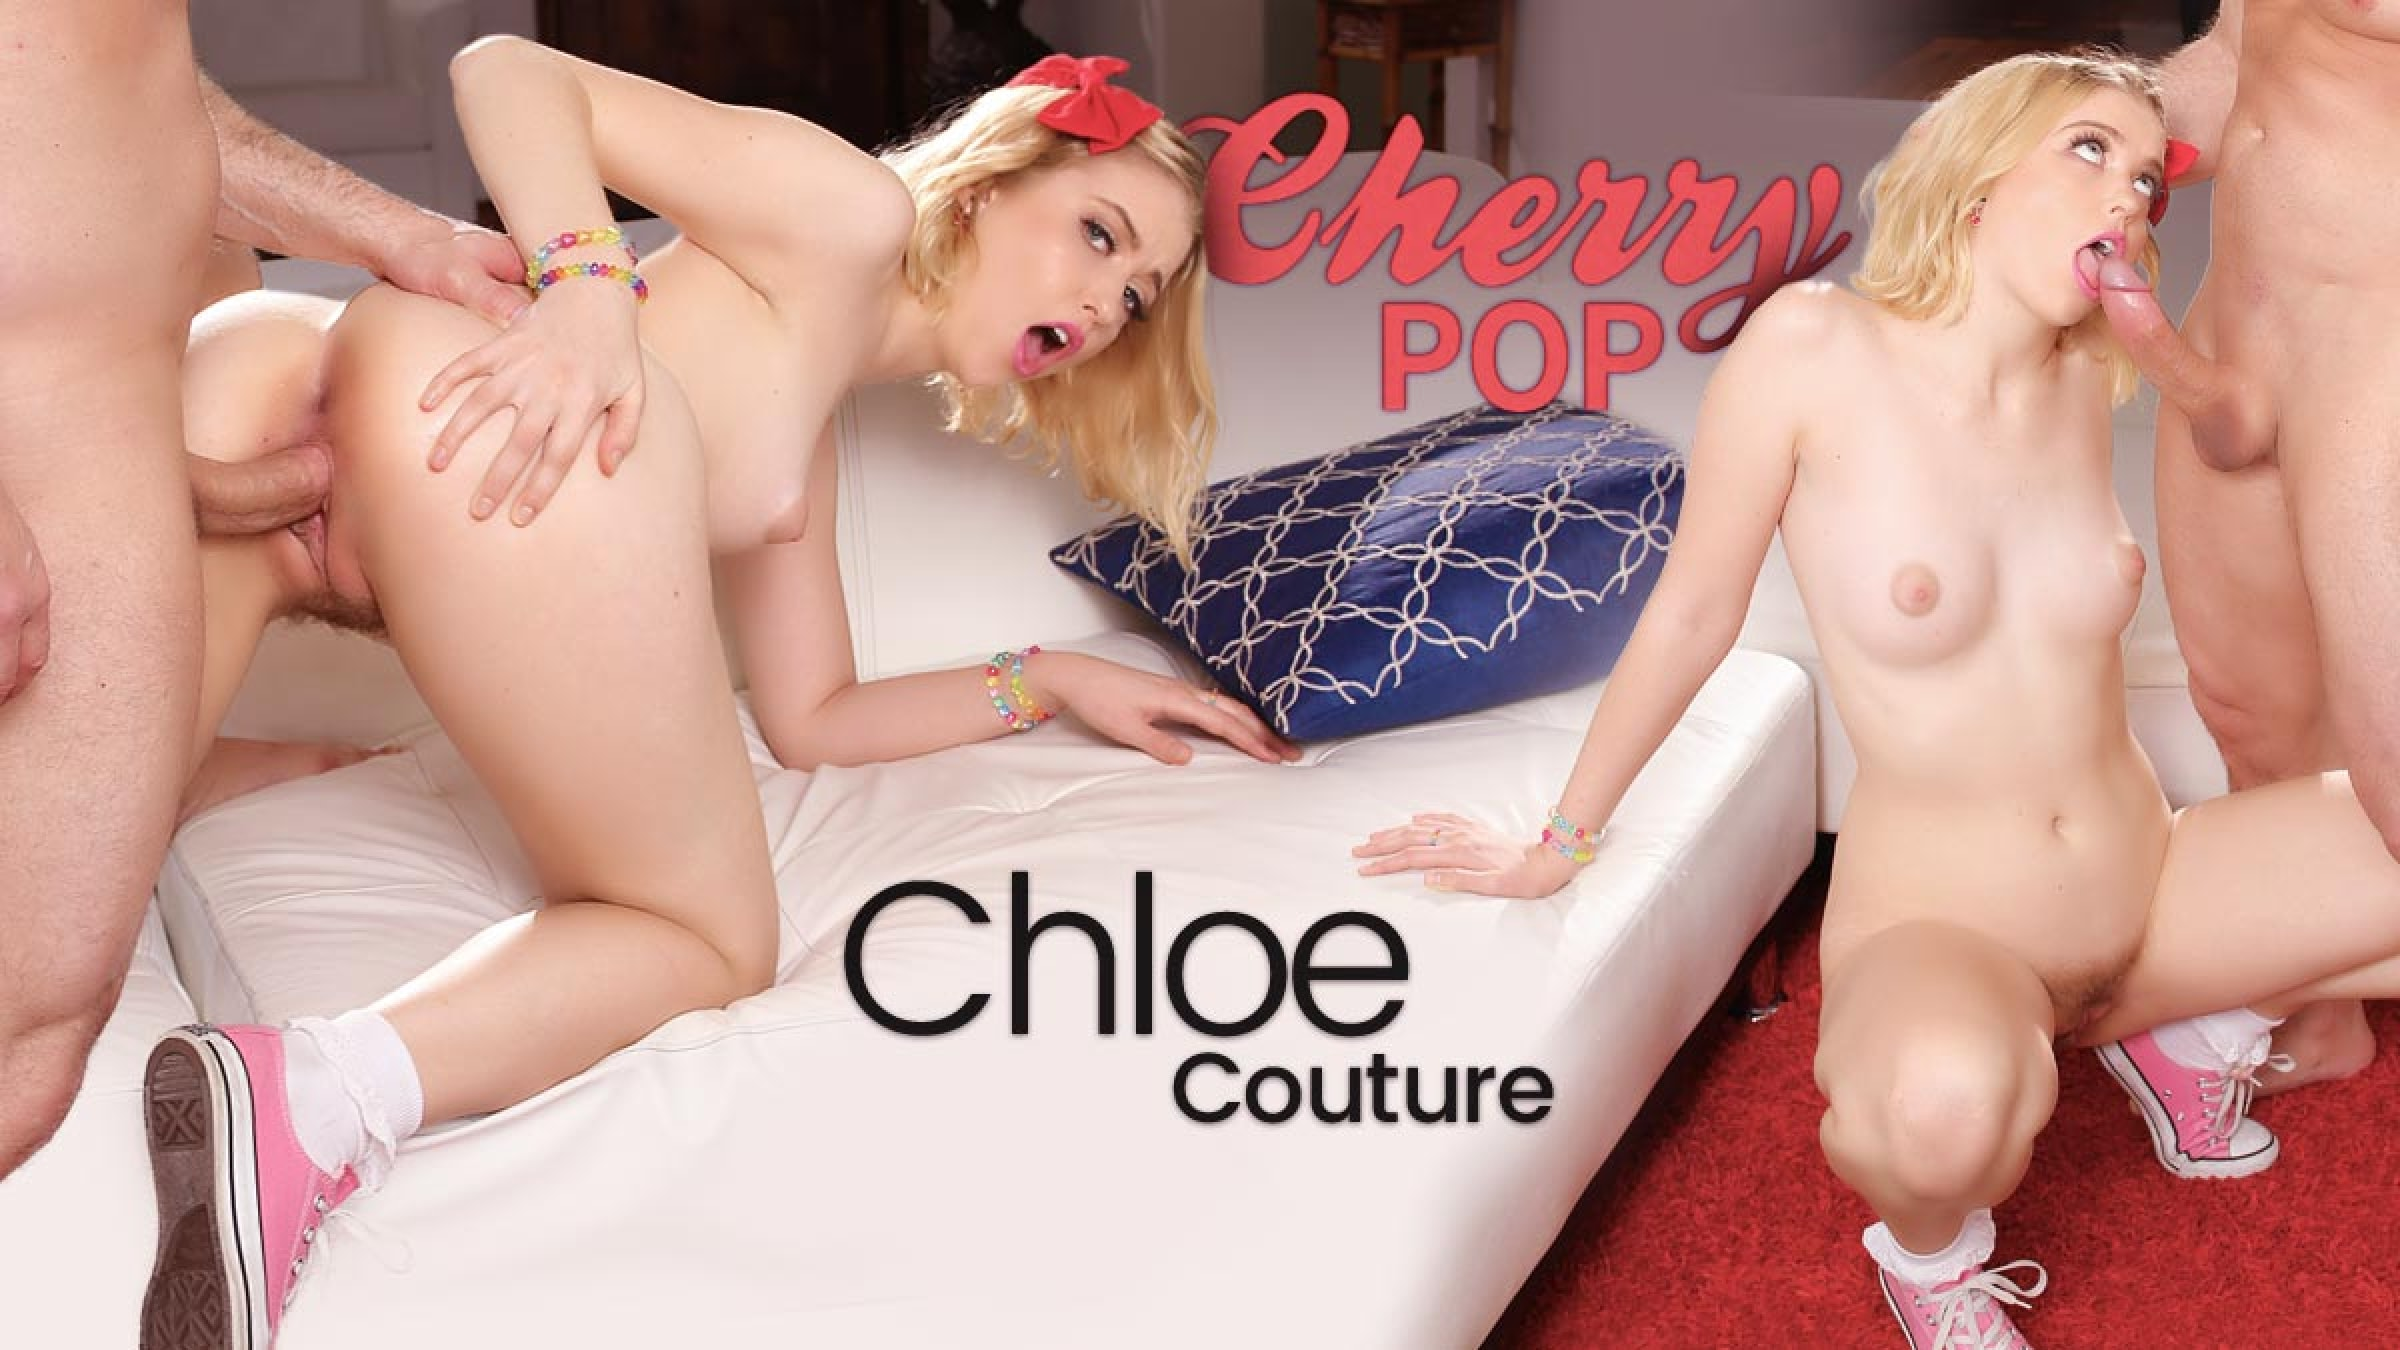 Chloe Couture in Cherry Pop